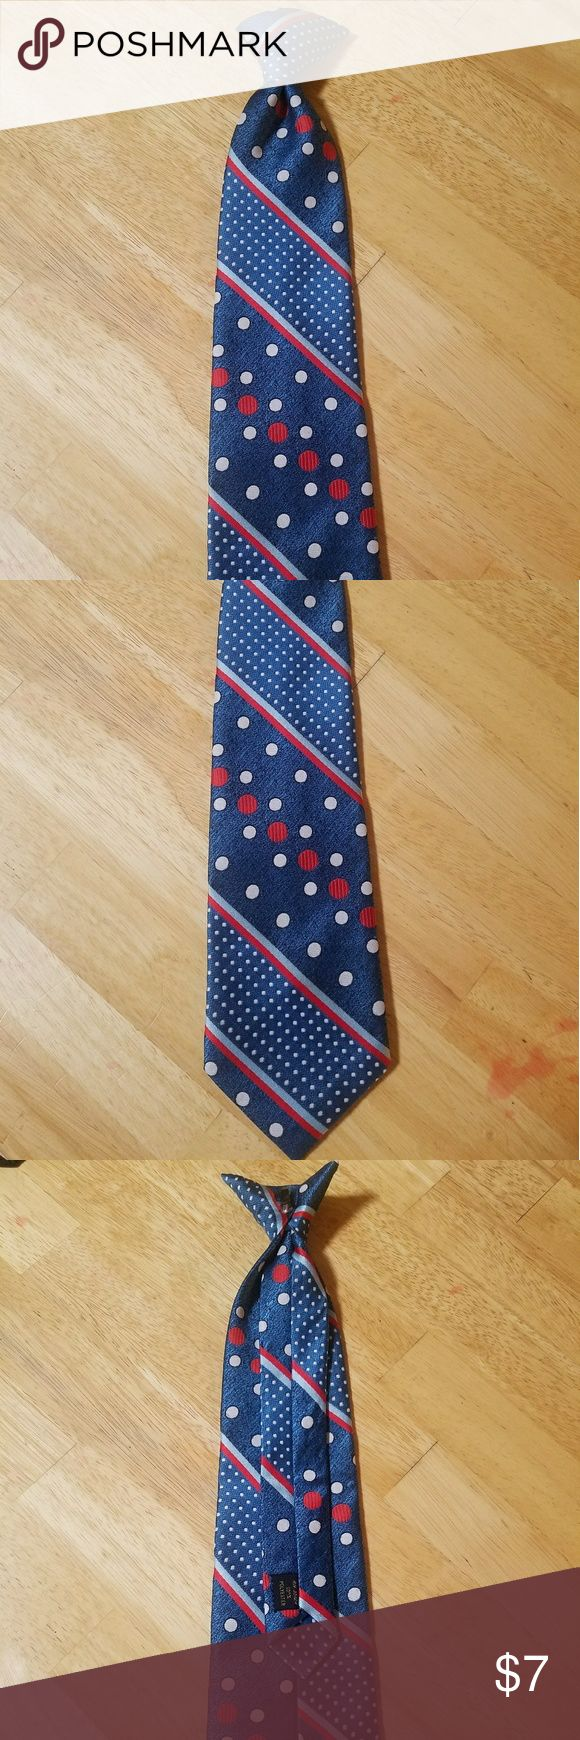 Beautiful blue and red clip on tie Blue and red clip on tie.   Bundle for discount and save on shipping Accessories Ties